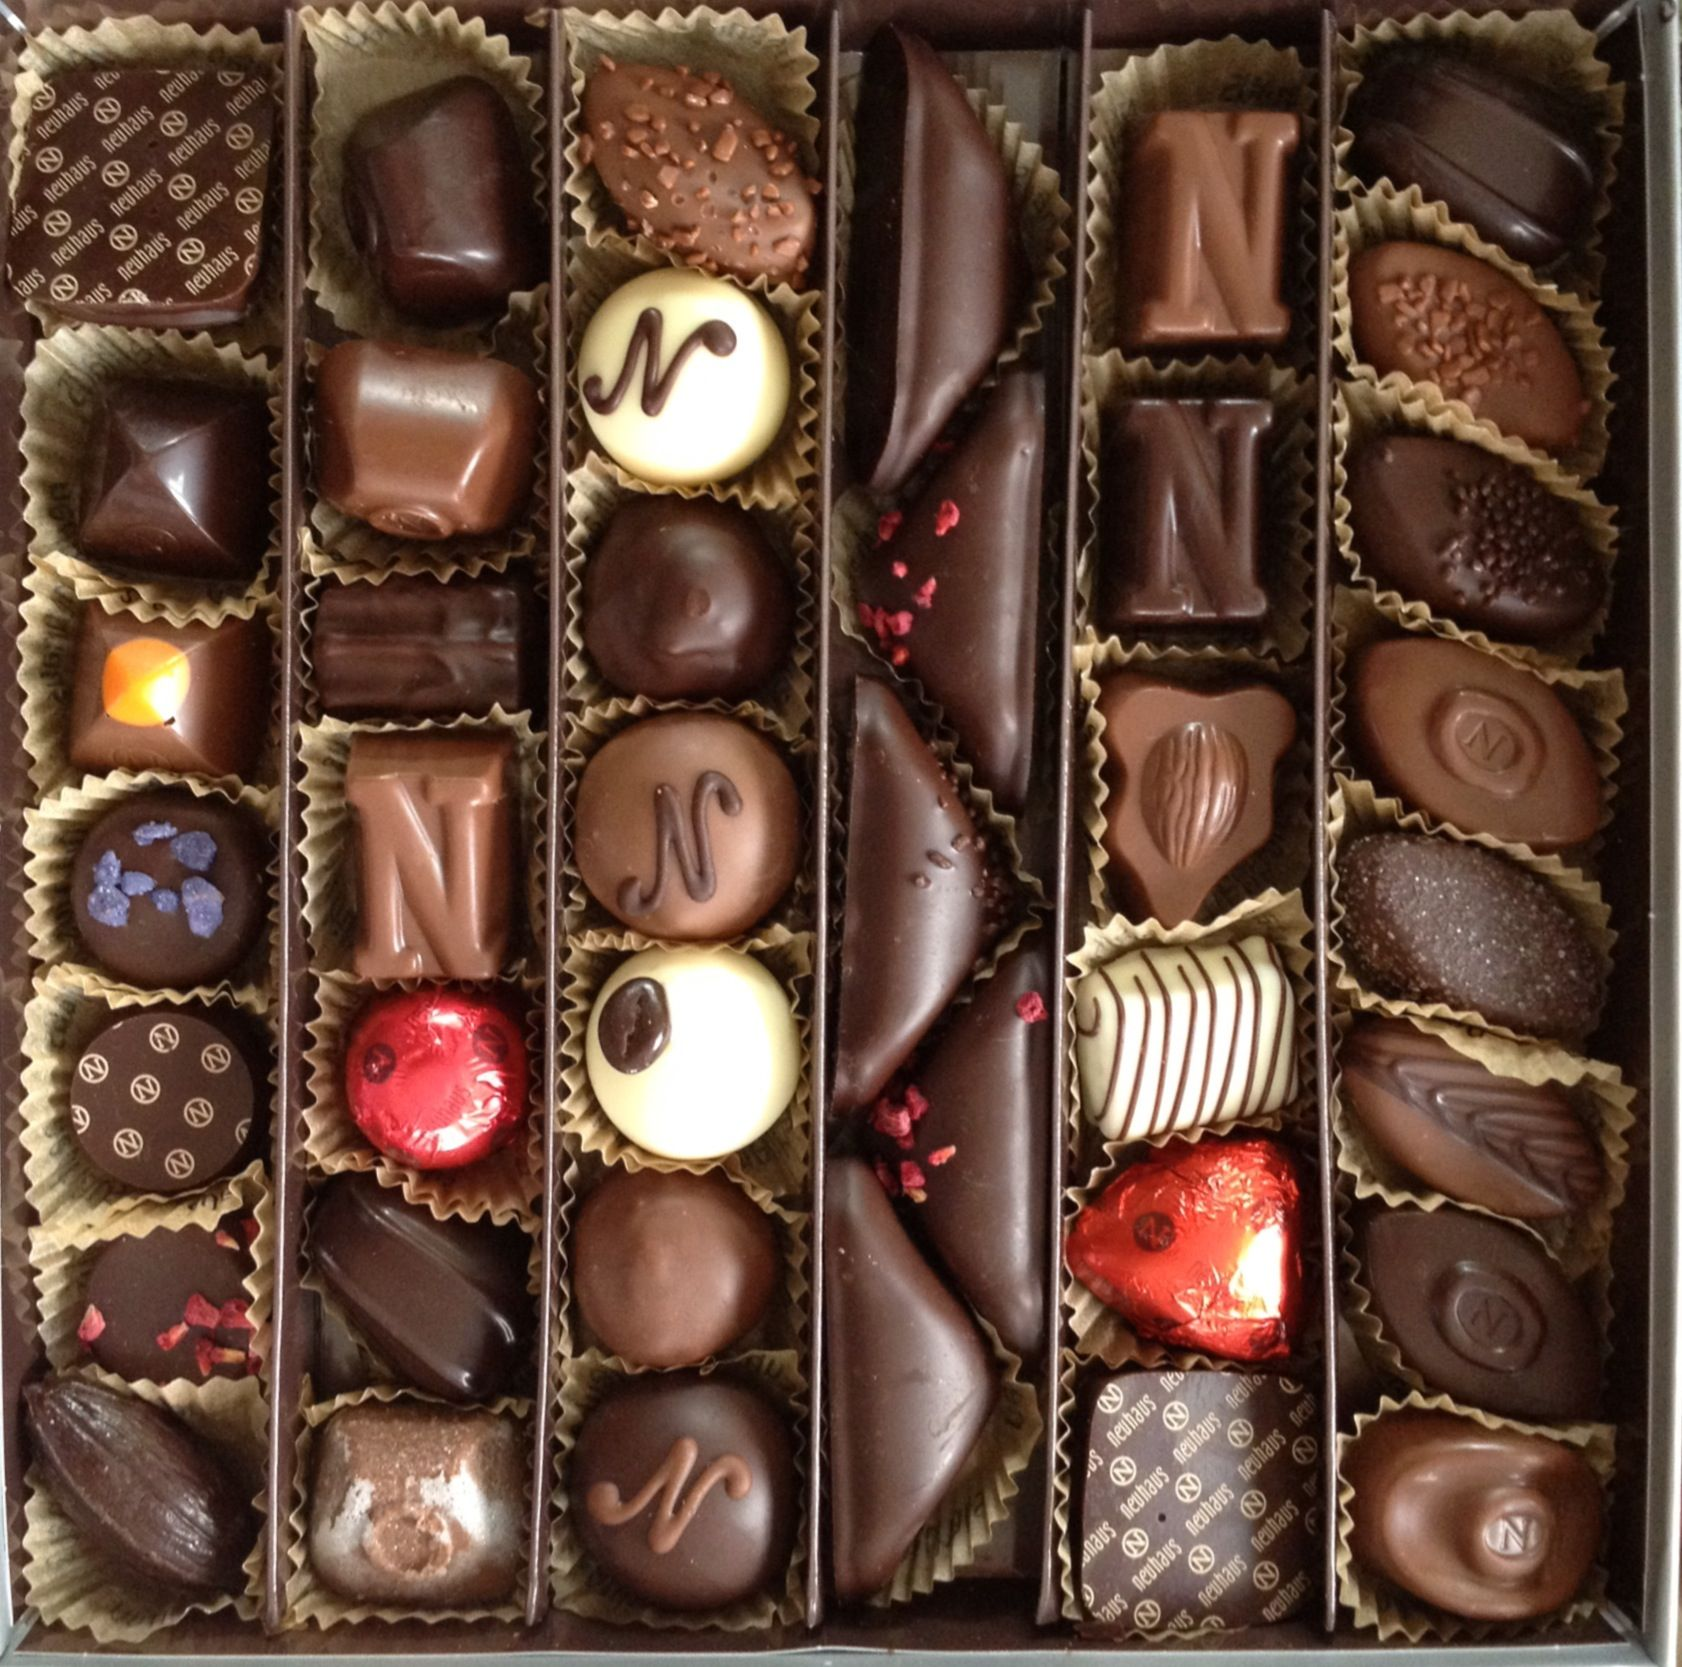 Neuhaus Assorted Chocolates Discovery Collection-Decadent Gift Fun Cute Present